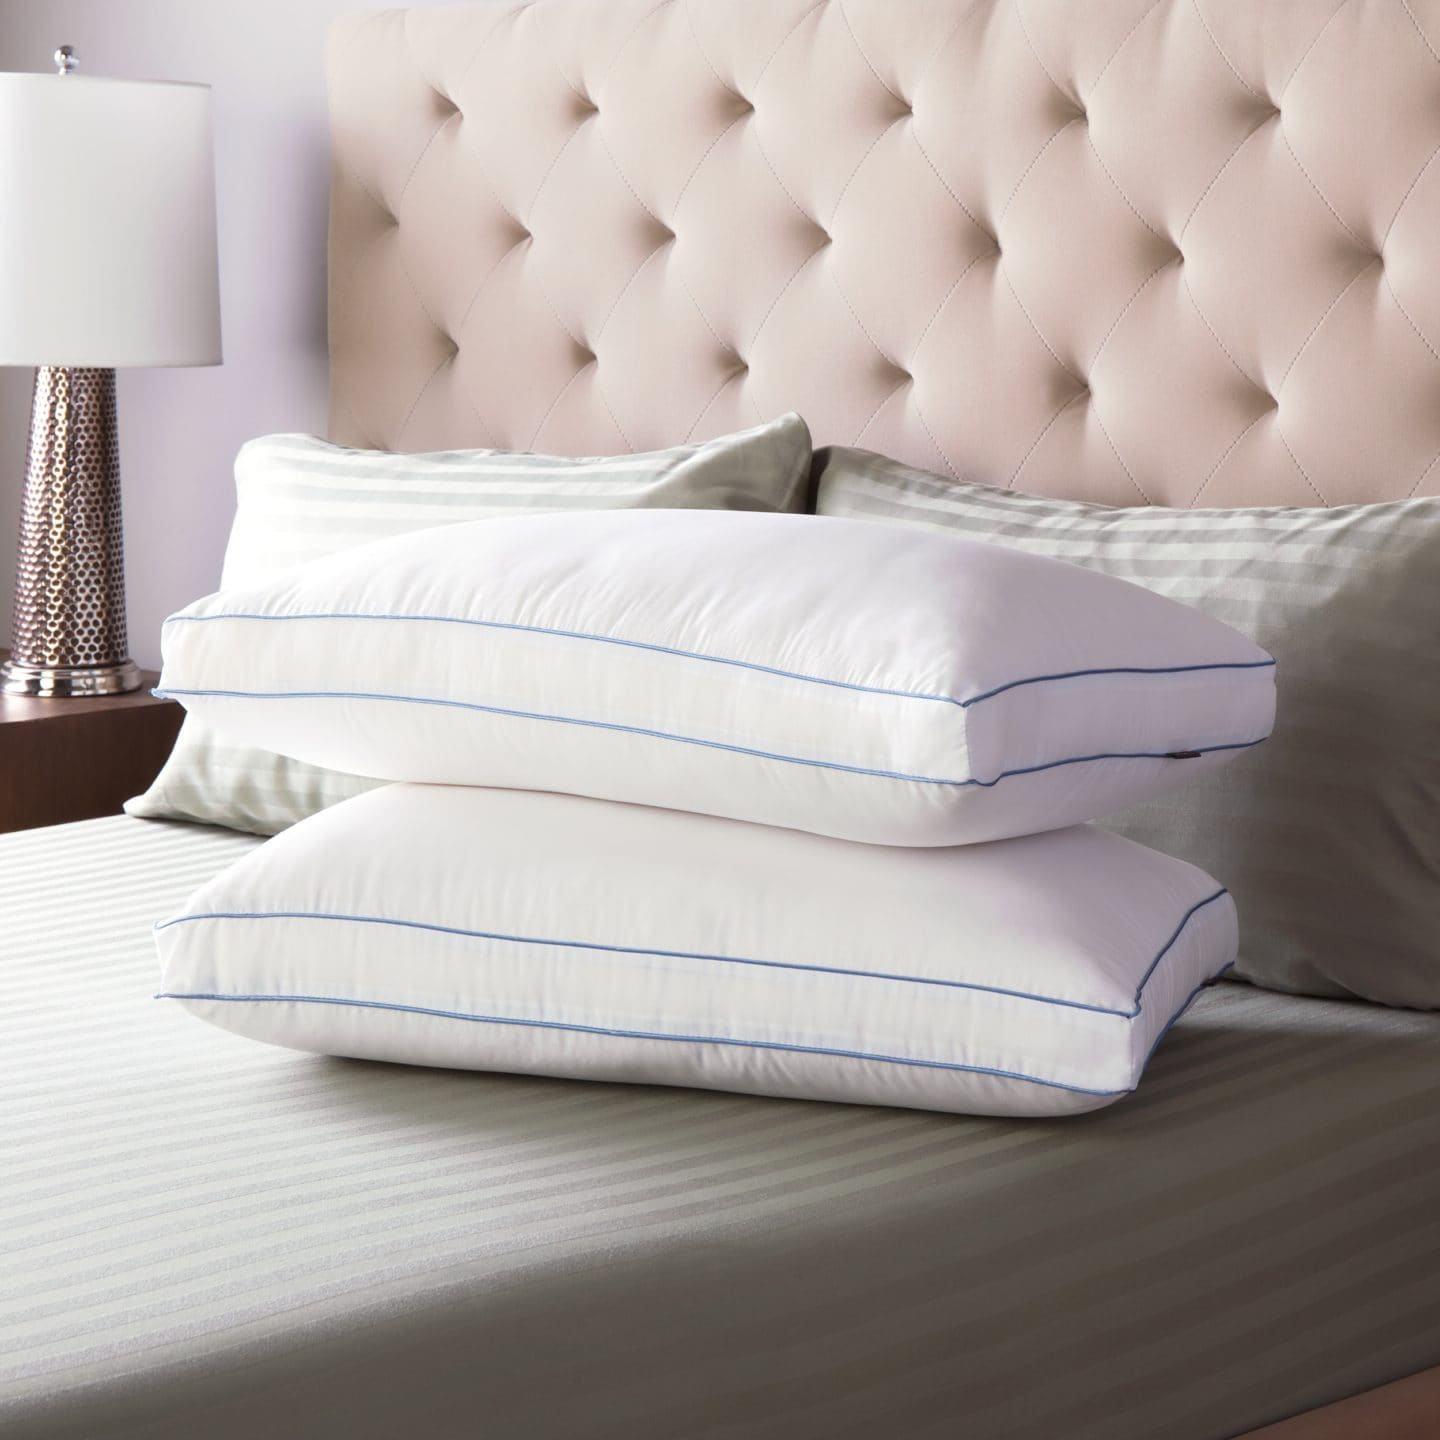 Pillows and pillow protectors for platform beds